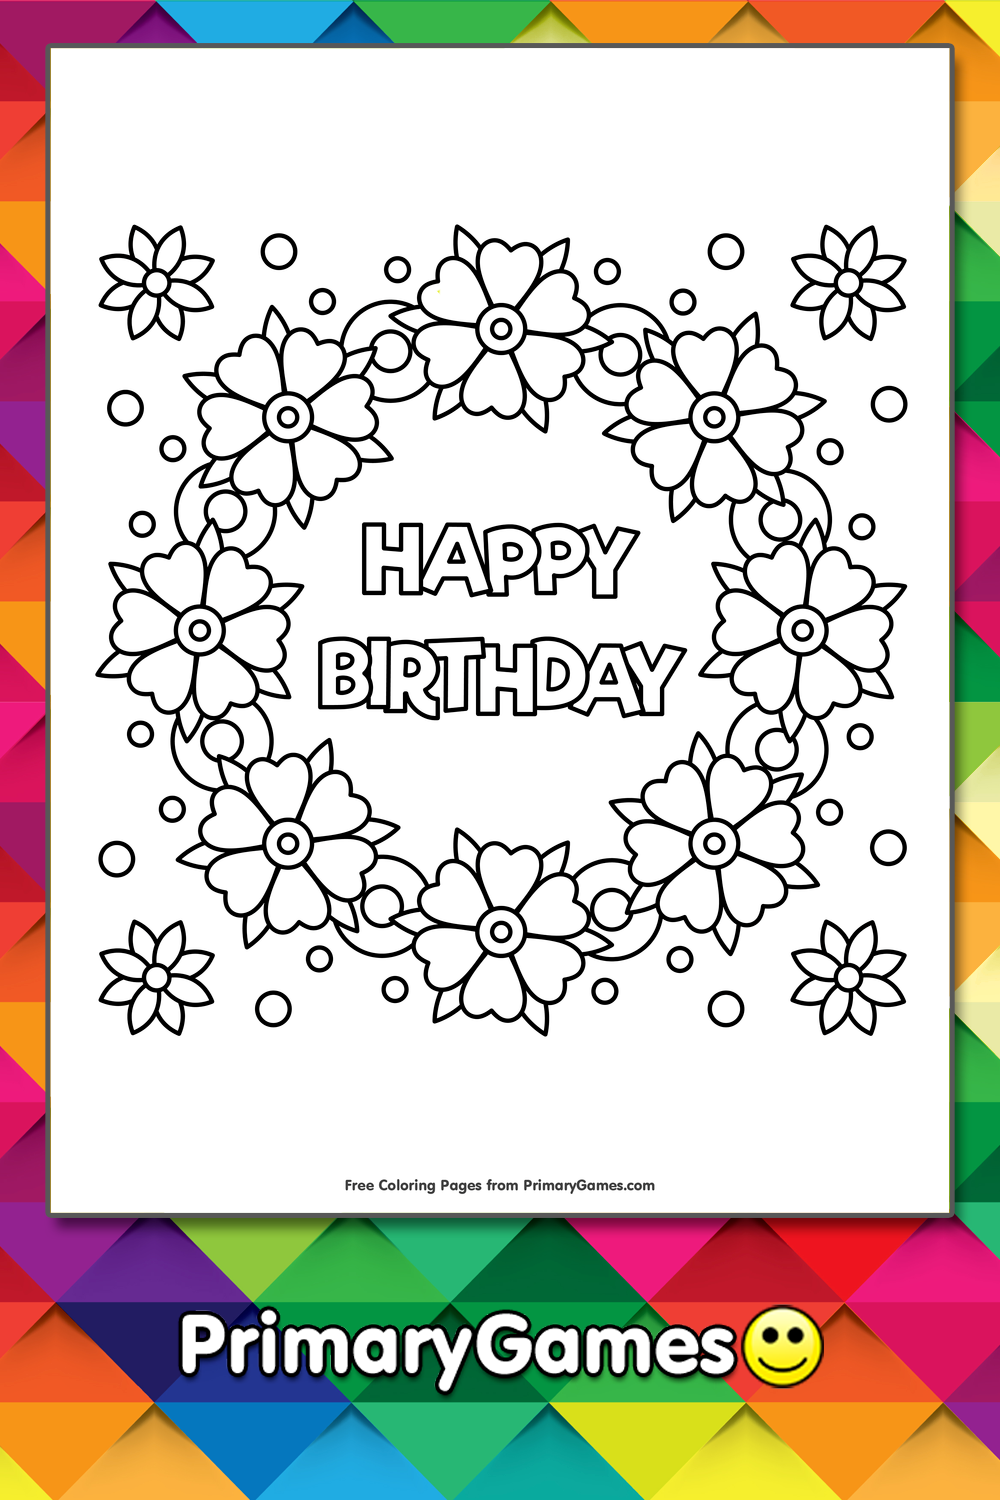 Happy Birthday Flower Wreath Coloring Page Free Printable Ebook In 2020 Birthday Coloring Pages Happy Birthday Coloring Pages Happy Birthday Flower